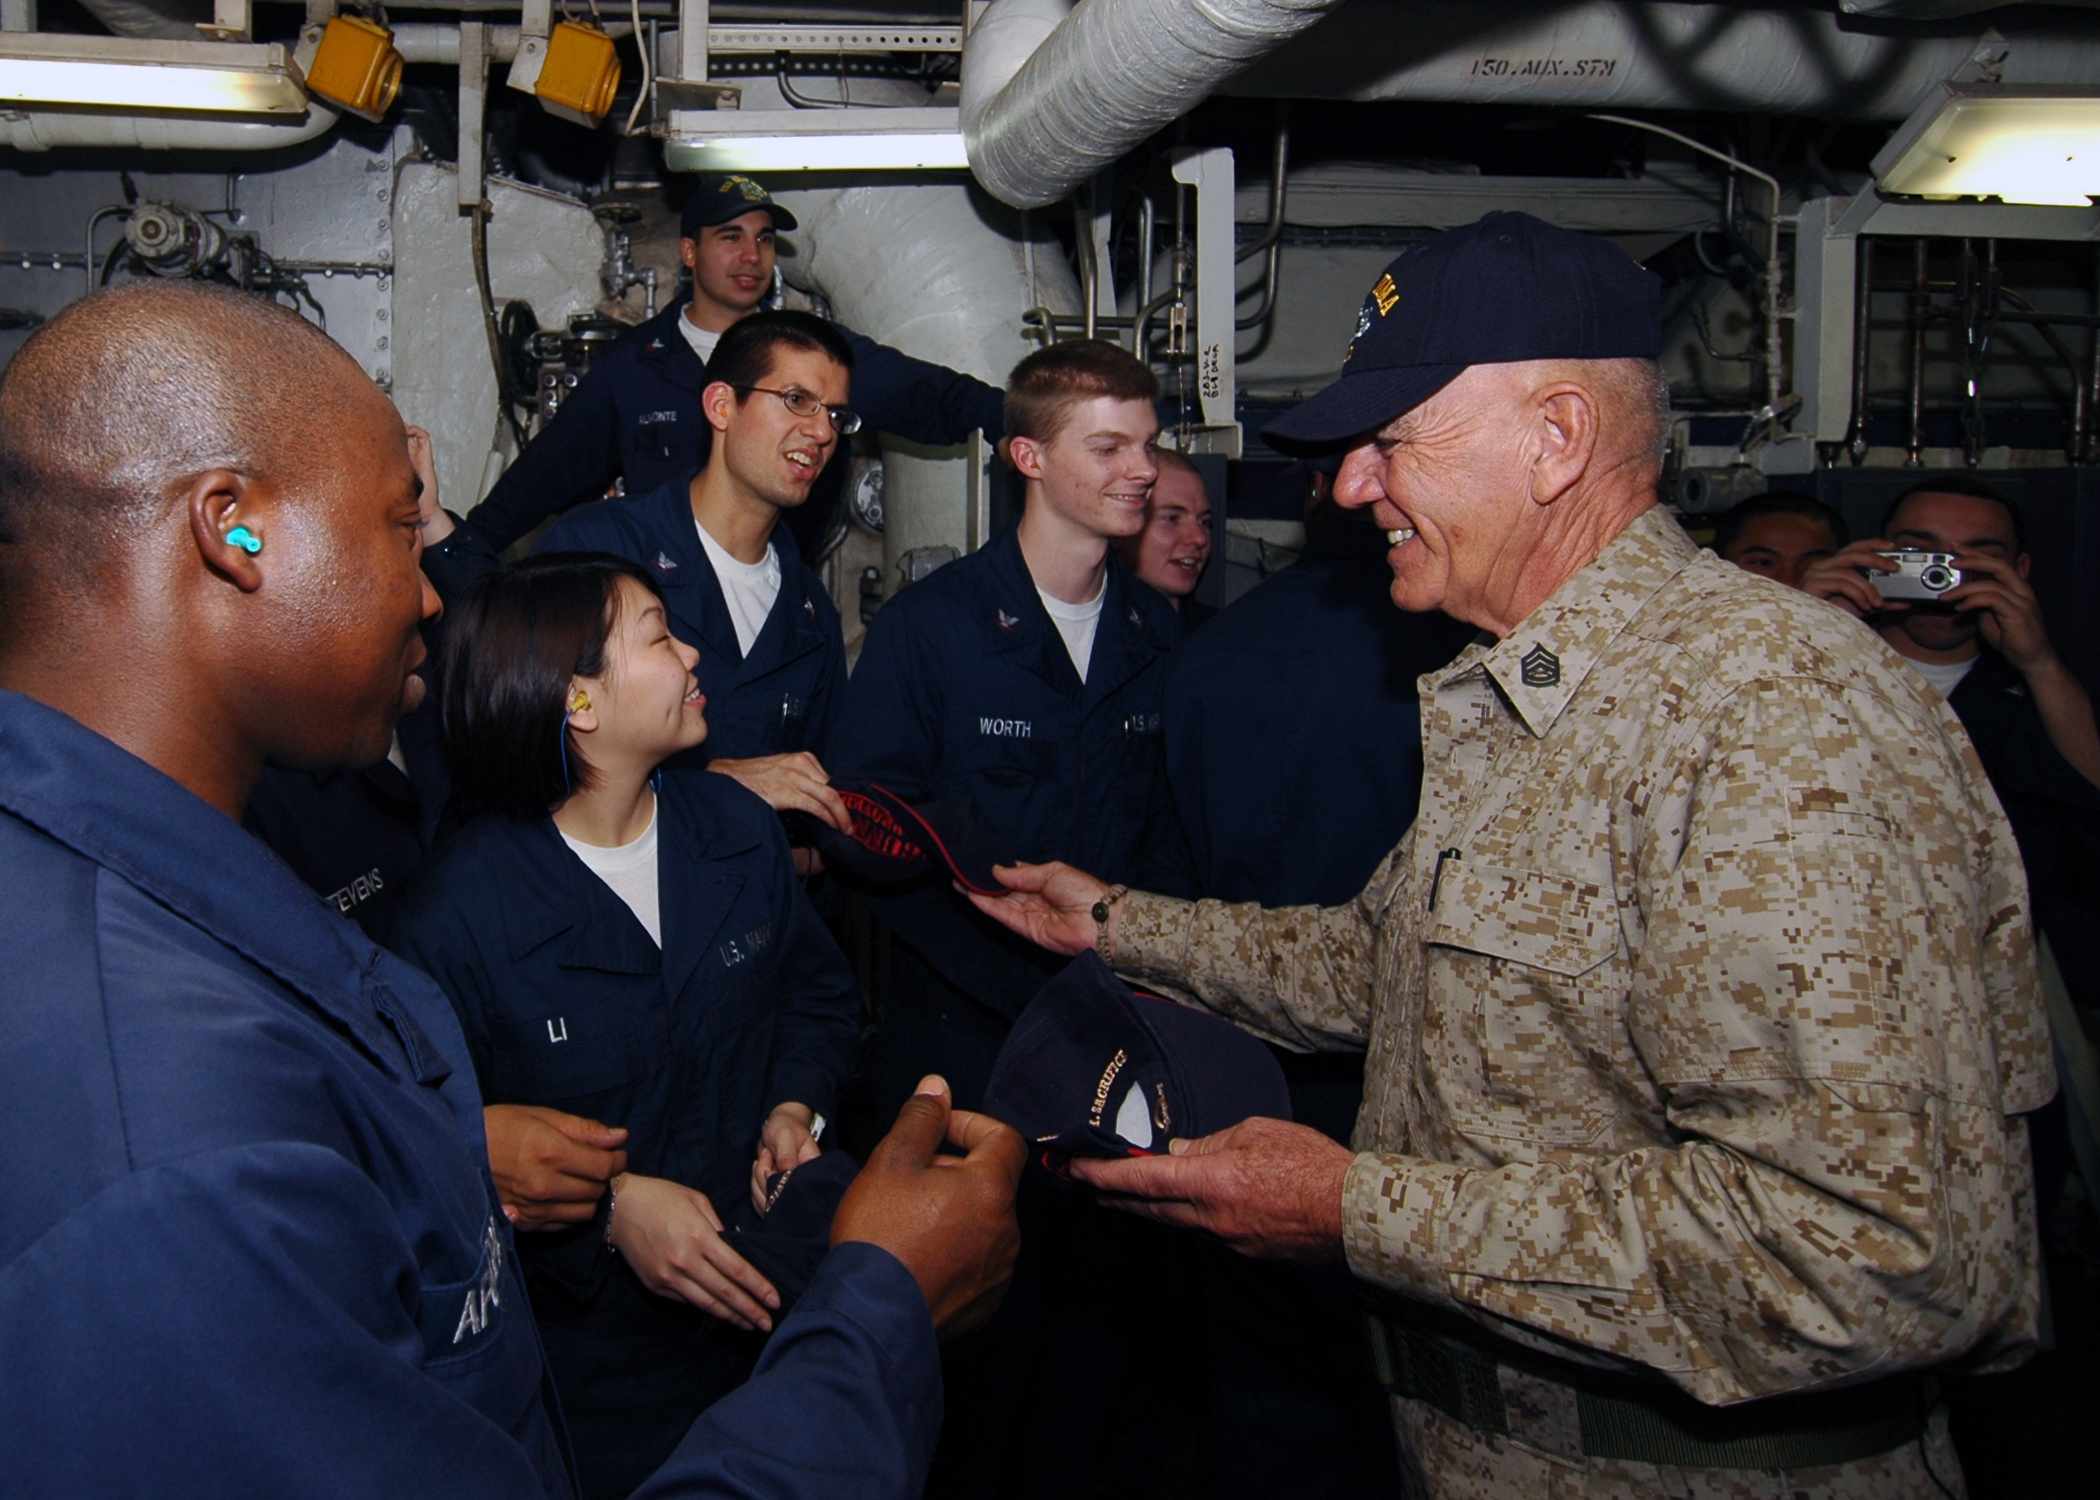 Retired Gunnery Sgt. R. Lee Ermey visits with Sailors and Marines aboard the multi-purpose amphibious assault ship USS Iwo Jima. Iwo Jima is deployed as part of the Iwo Jima Expeditionary Strike Group supporting maritime security operations in the U.S. 5th Fleet area of responsibility. (MCSN Chad R. Erdmann/Navy)